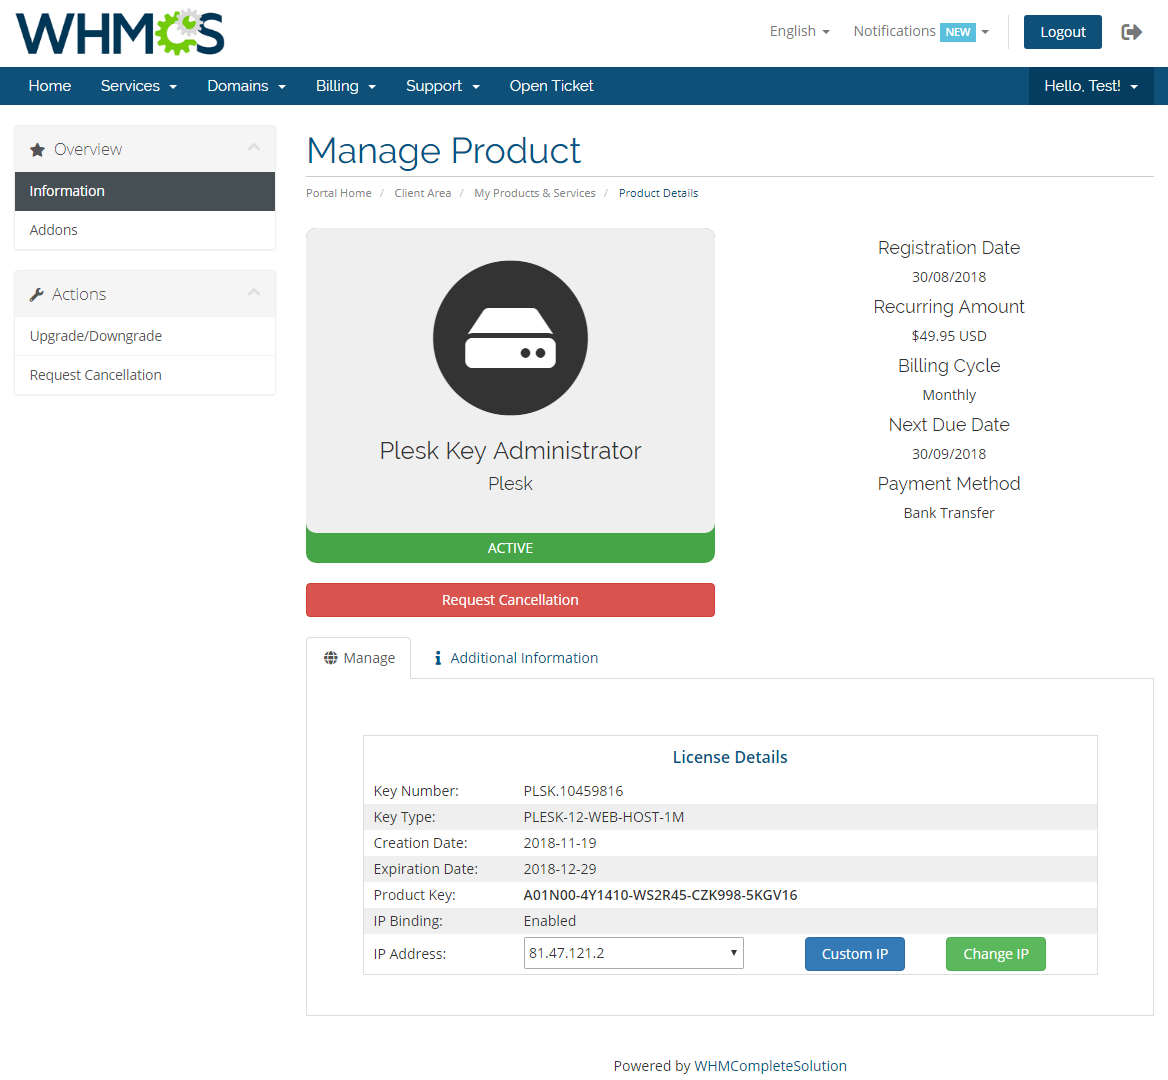 Plesk Key Administrator For WHMCS - WHMCS Marketplace